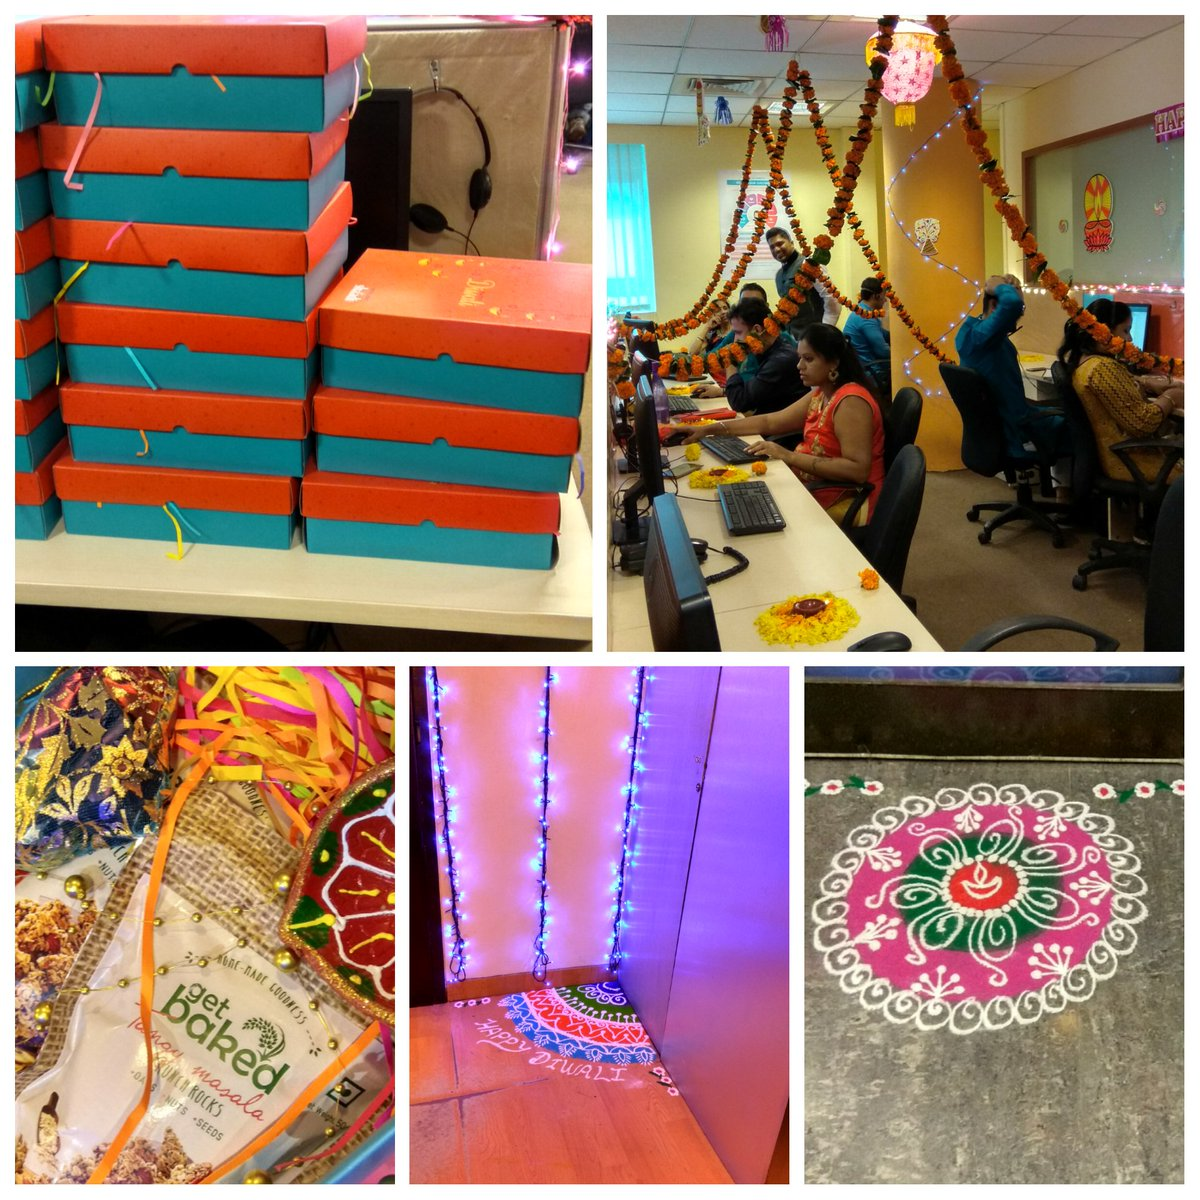 test Twitter Media - #Diwali #Celebration at @ShaadiDotCom #Mumbai office #HappyDiwali  #Diwali2017 https://t.co/GGKgJwxvM0